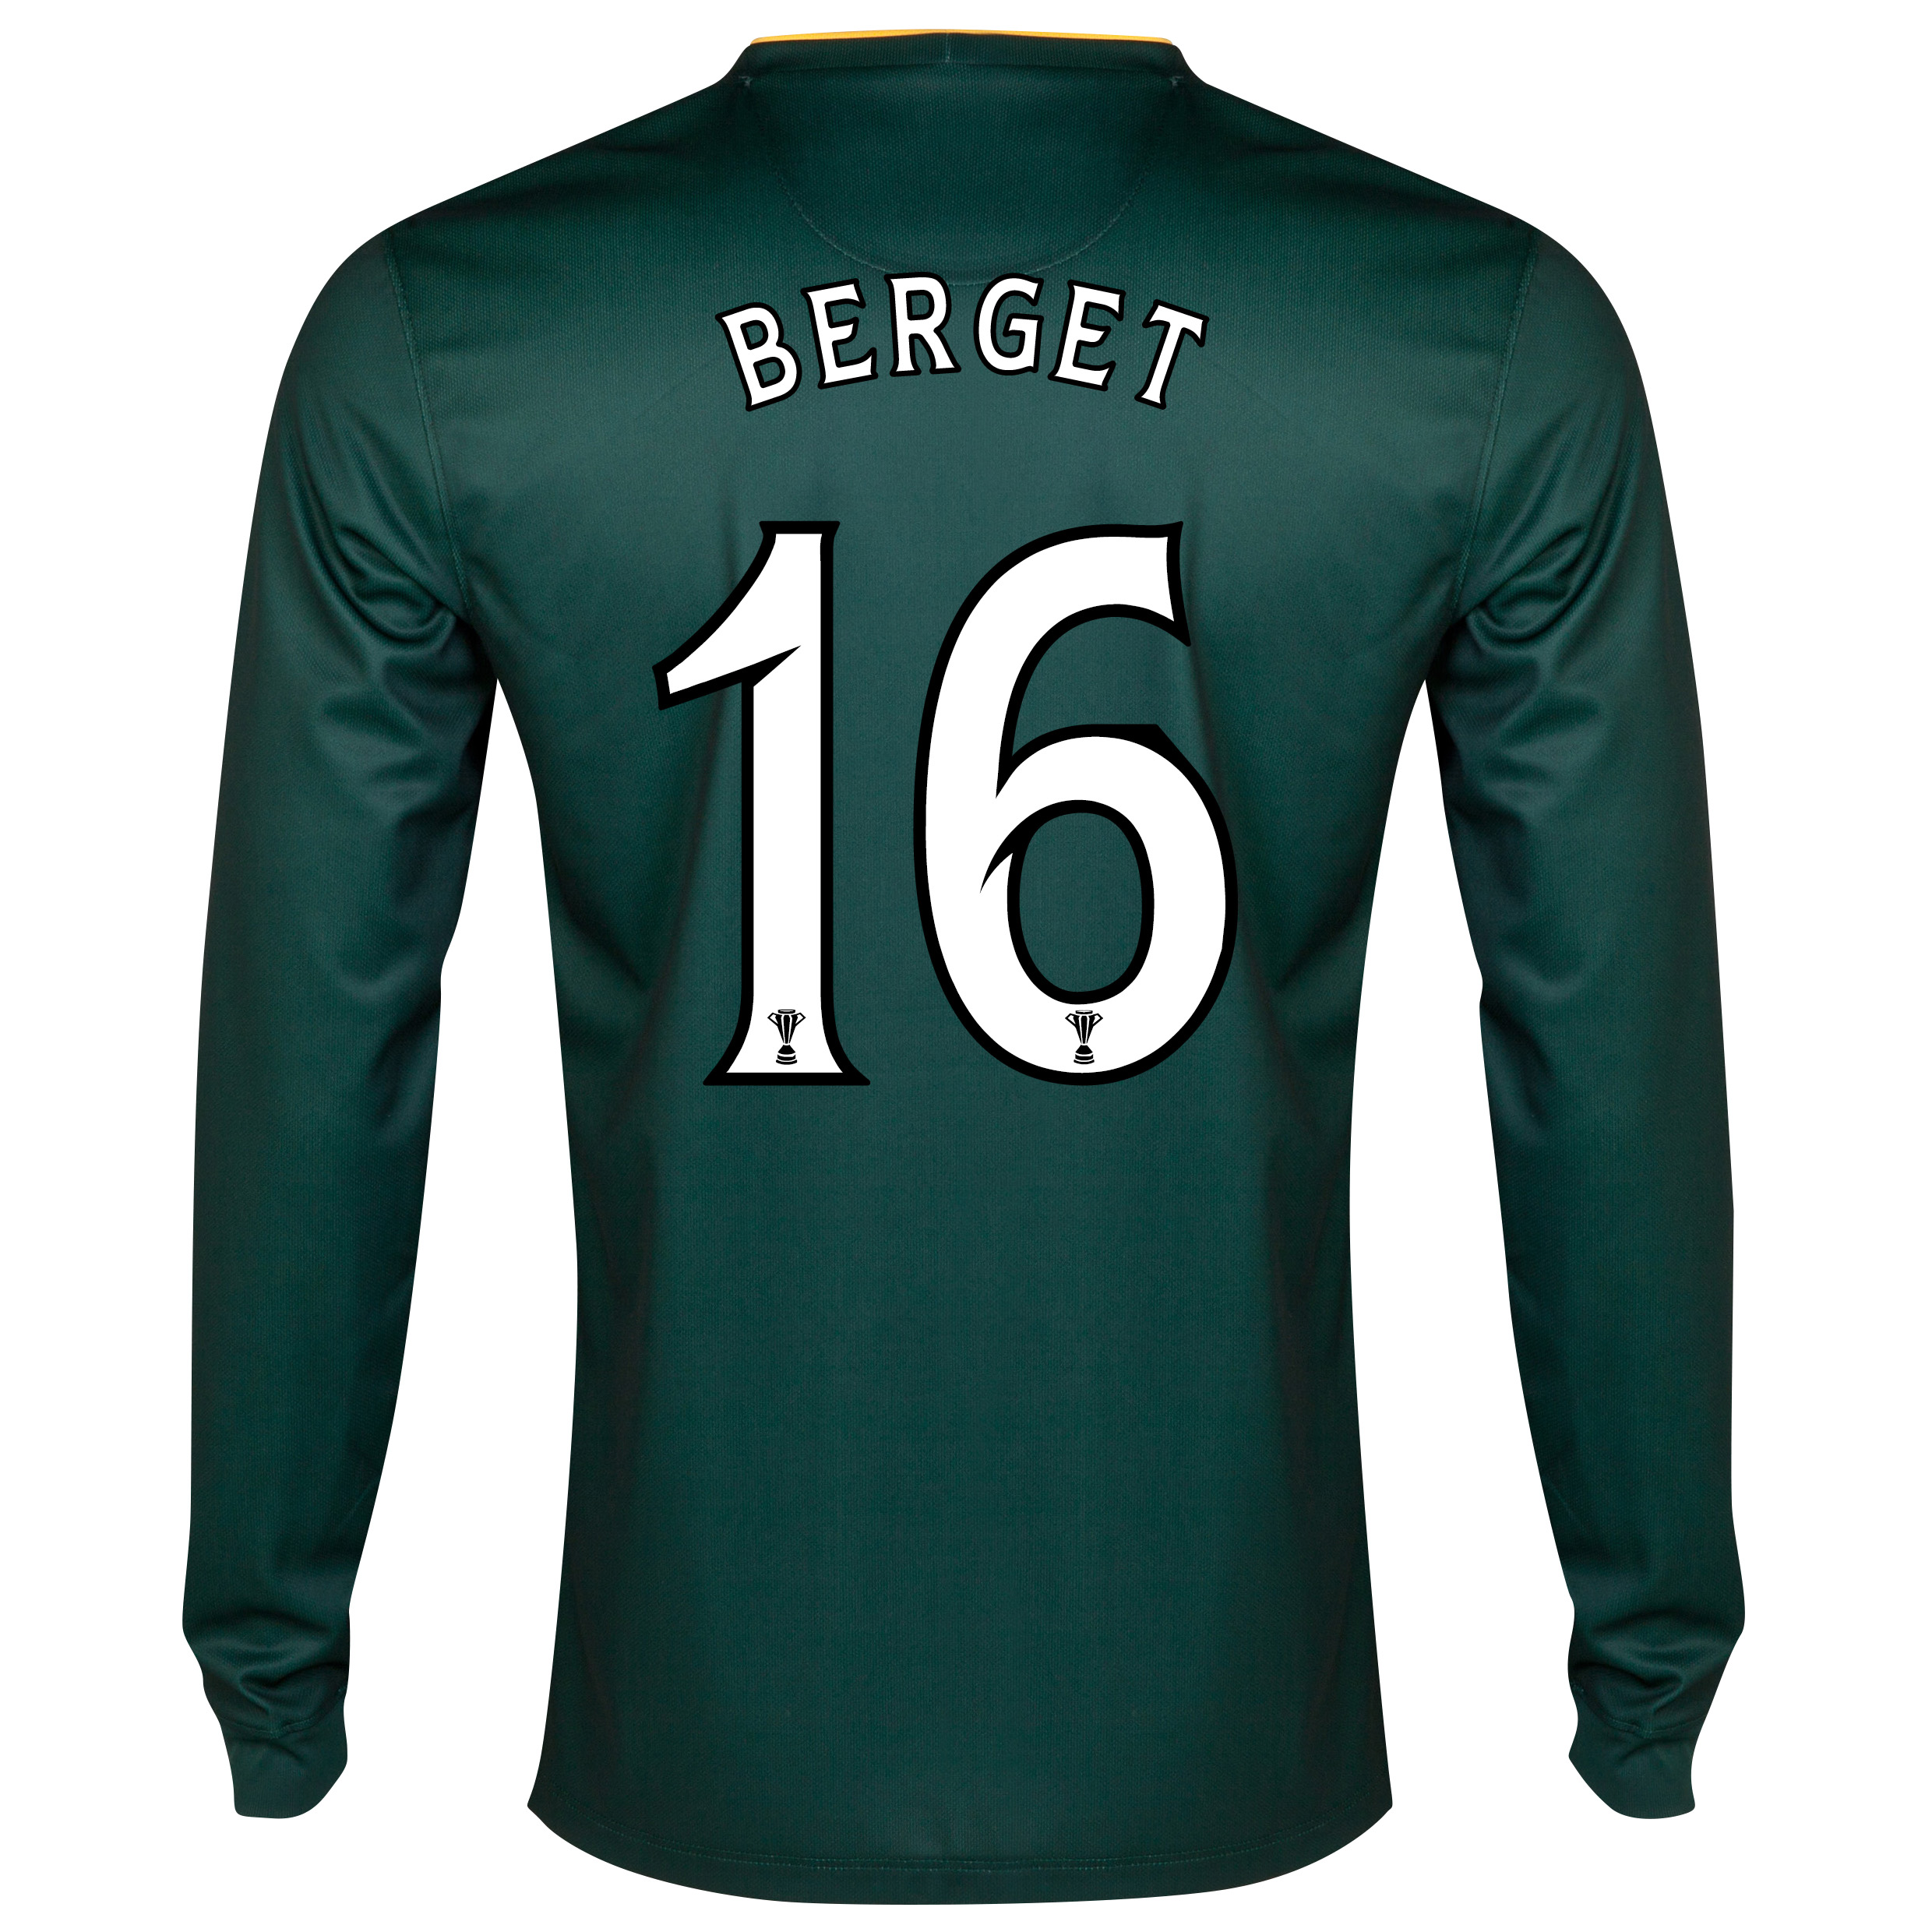 Celtic Away Shirt 2014/15 - Long Sleeved - With Sponsor Green with Berget 16 printing